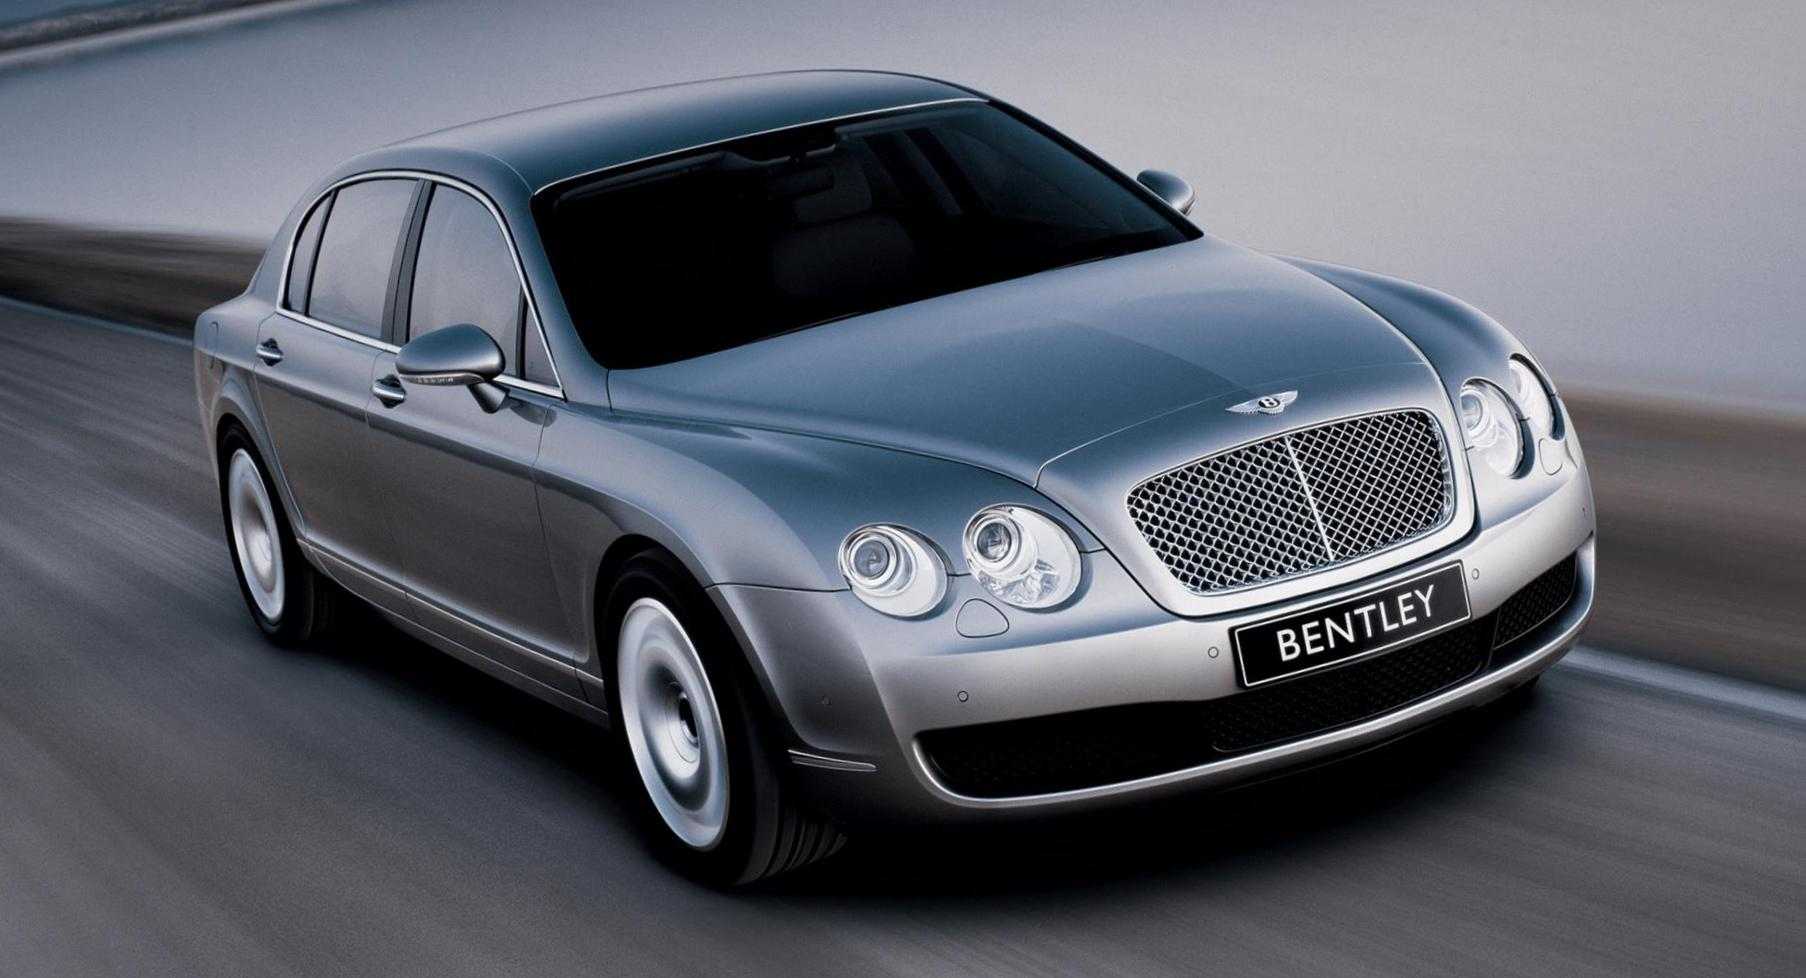 Continental Flying Spur Bentley approved 2014